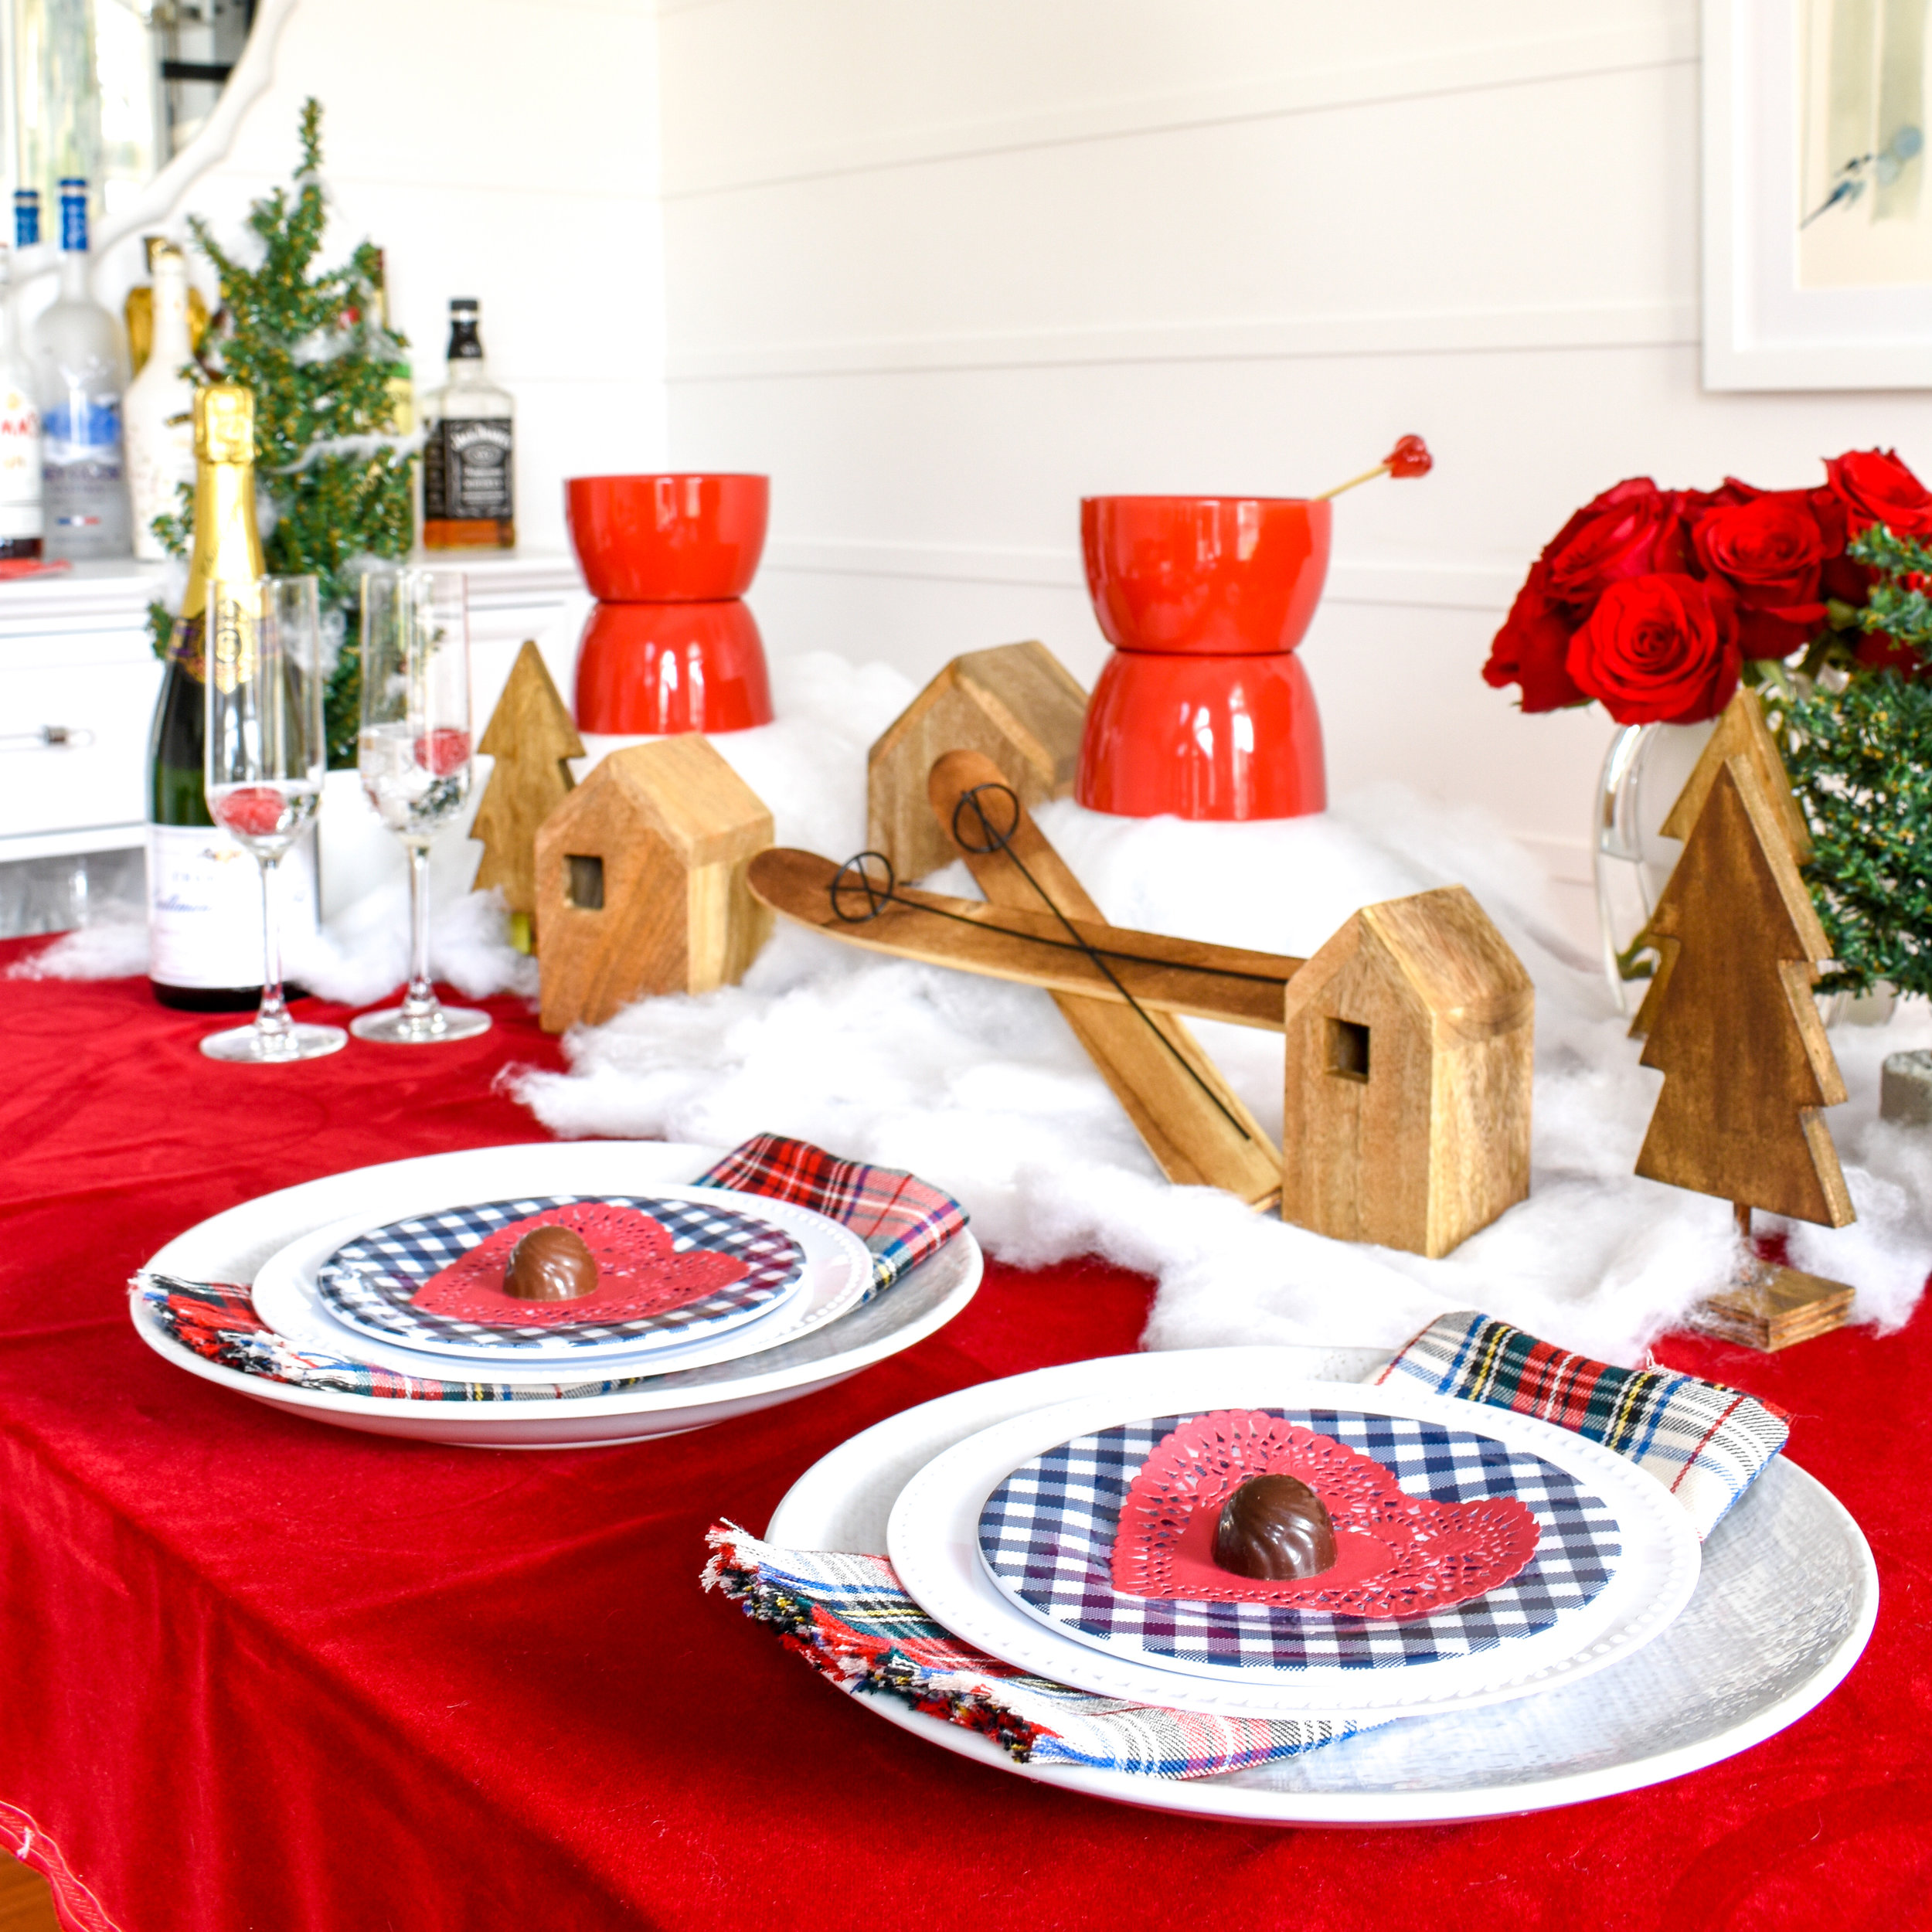 A Romantic Ski Chalet: How To Re-Use Your Christmas Decor for Valentine's Day  I've left my Christmas decor up a little longer and really stretched its life by transferring it into this adorable - and romantic - chalet tablescape. Today I'm showing you how I DIYed it and how you can too!